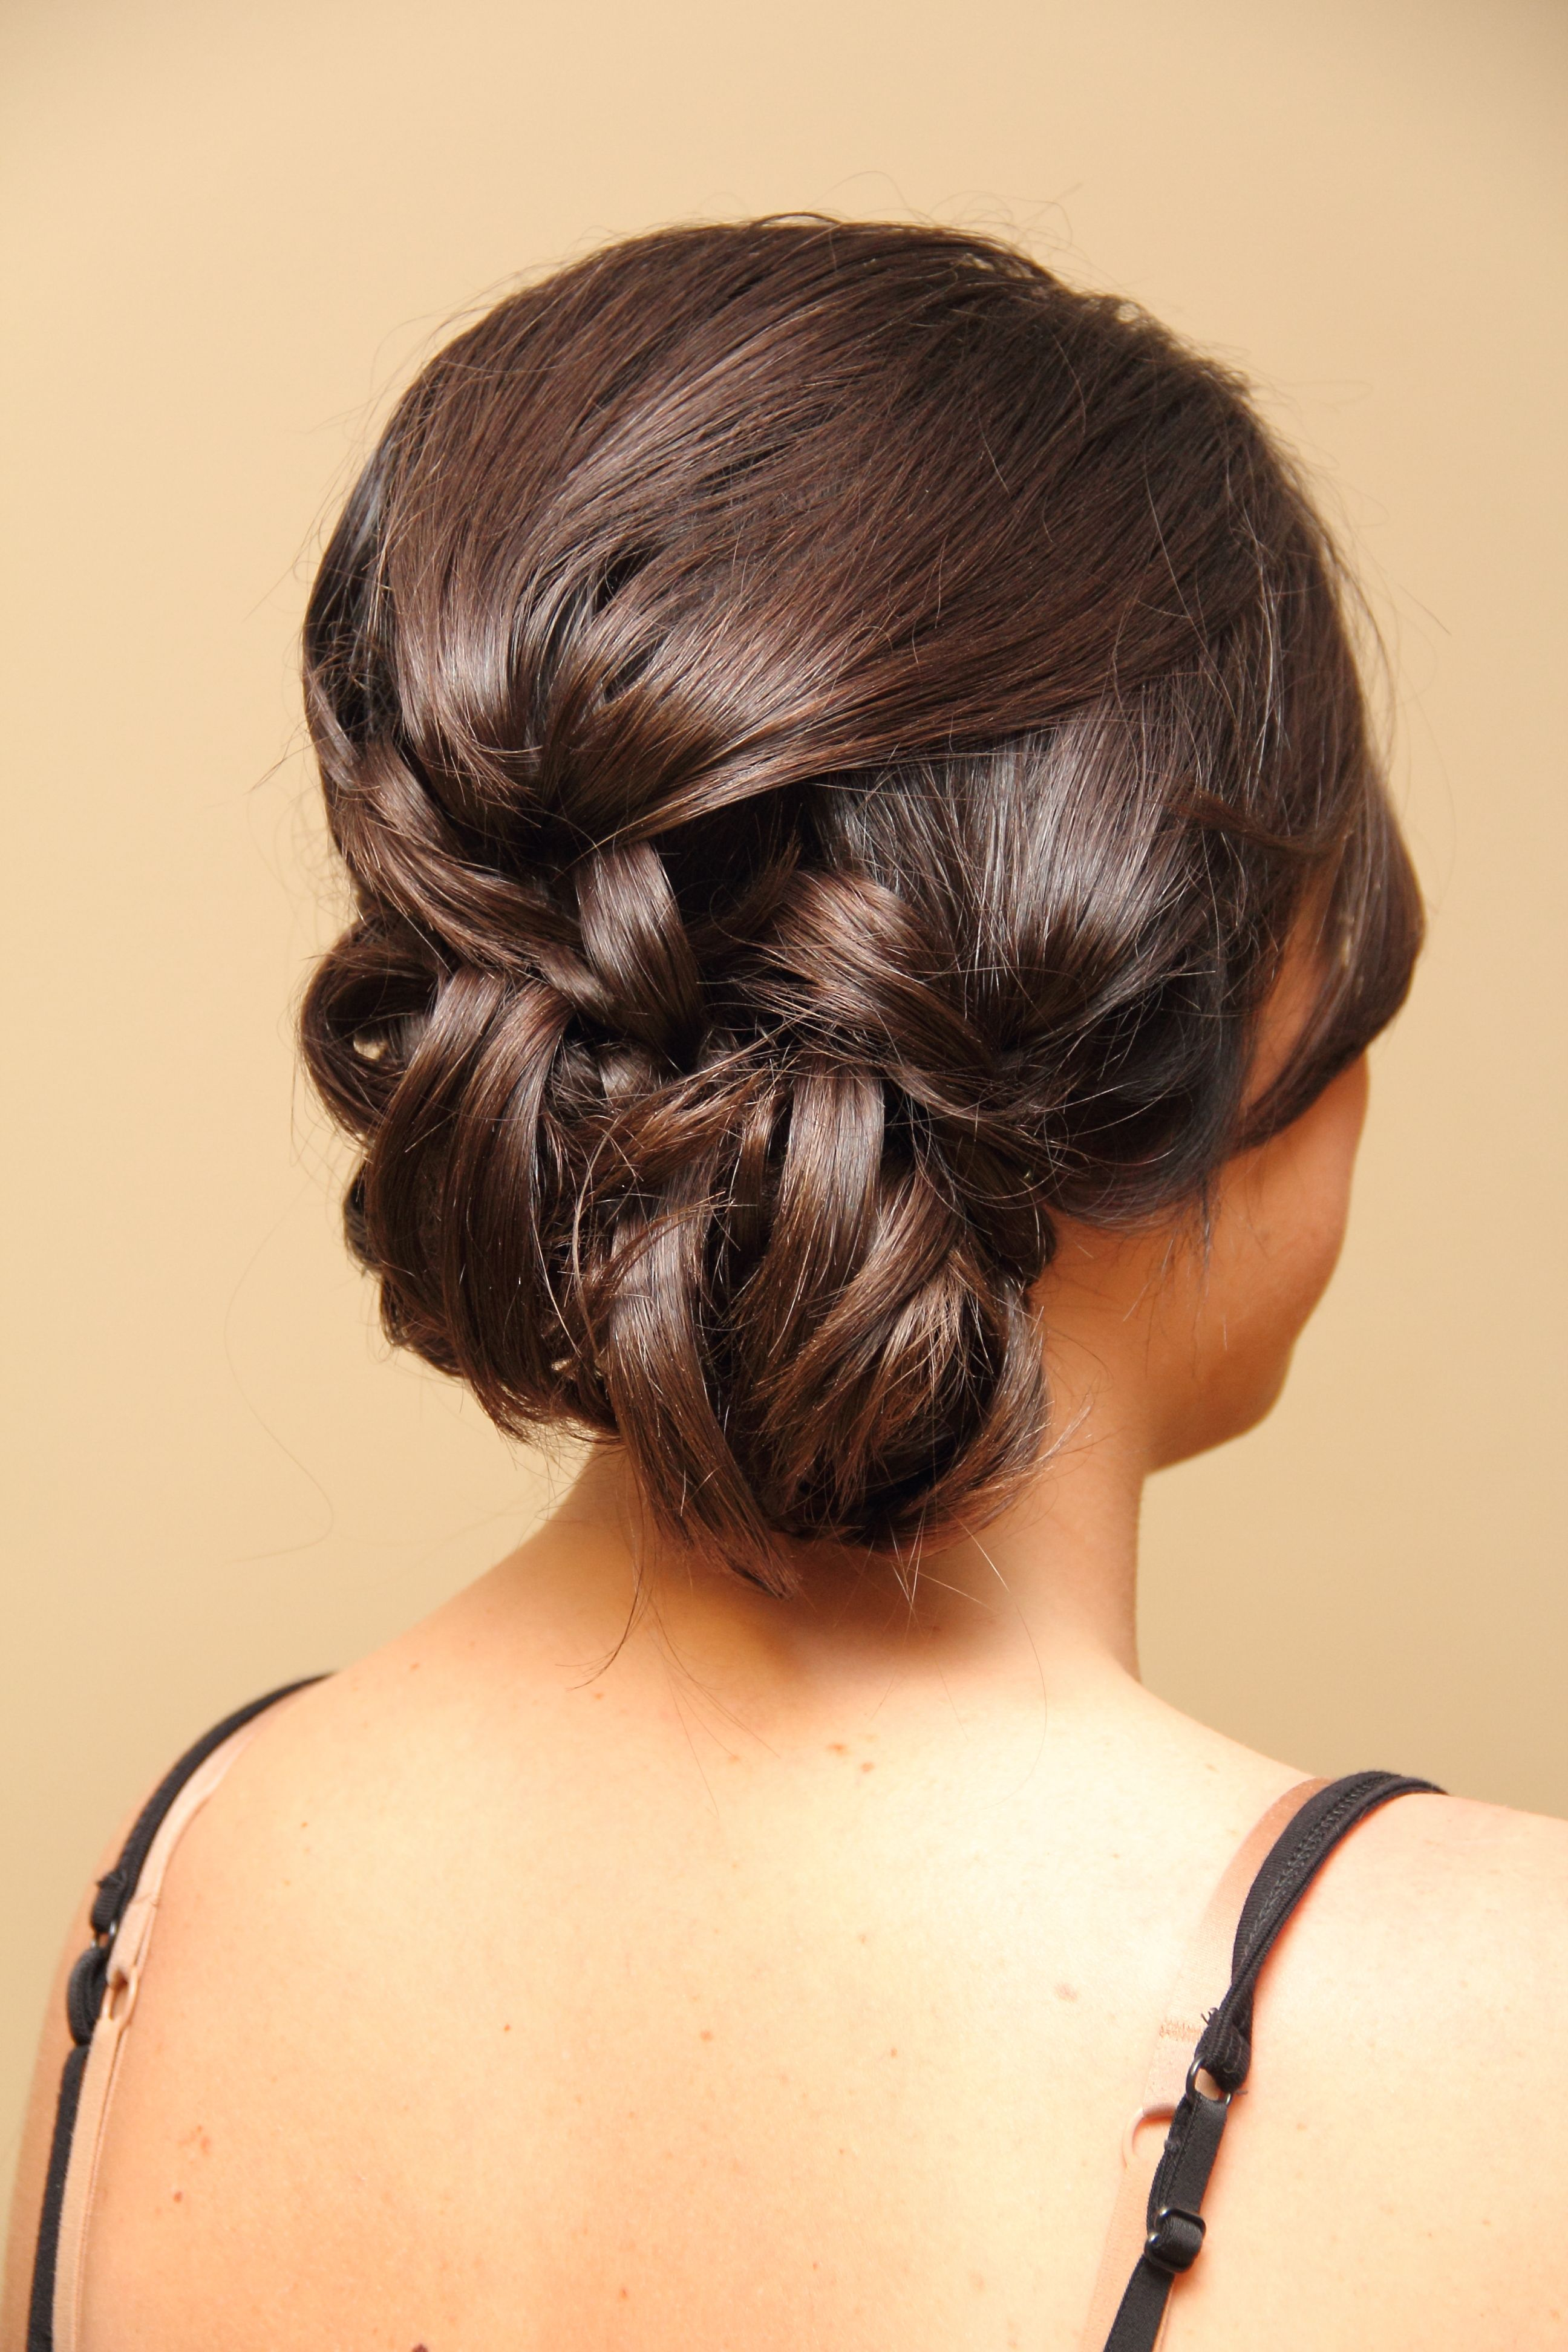 Side updo great detail here 헤너스타일 pinterest updo updos